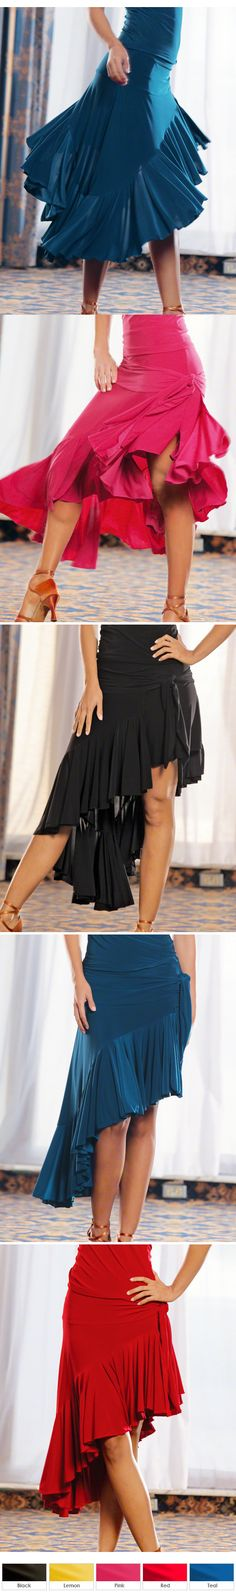 Dance America S313 - Volant Wrap Latin Skirt-Salsa Thursdays here I come!